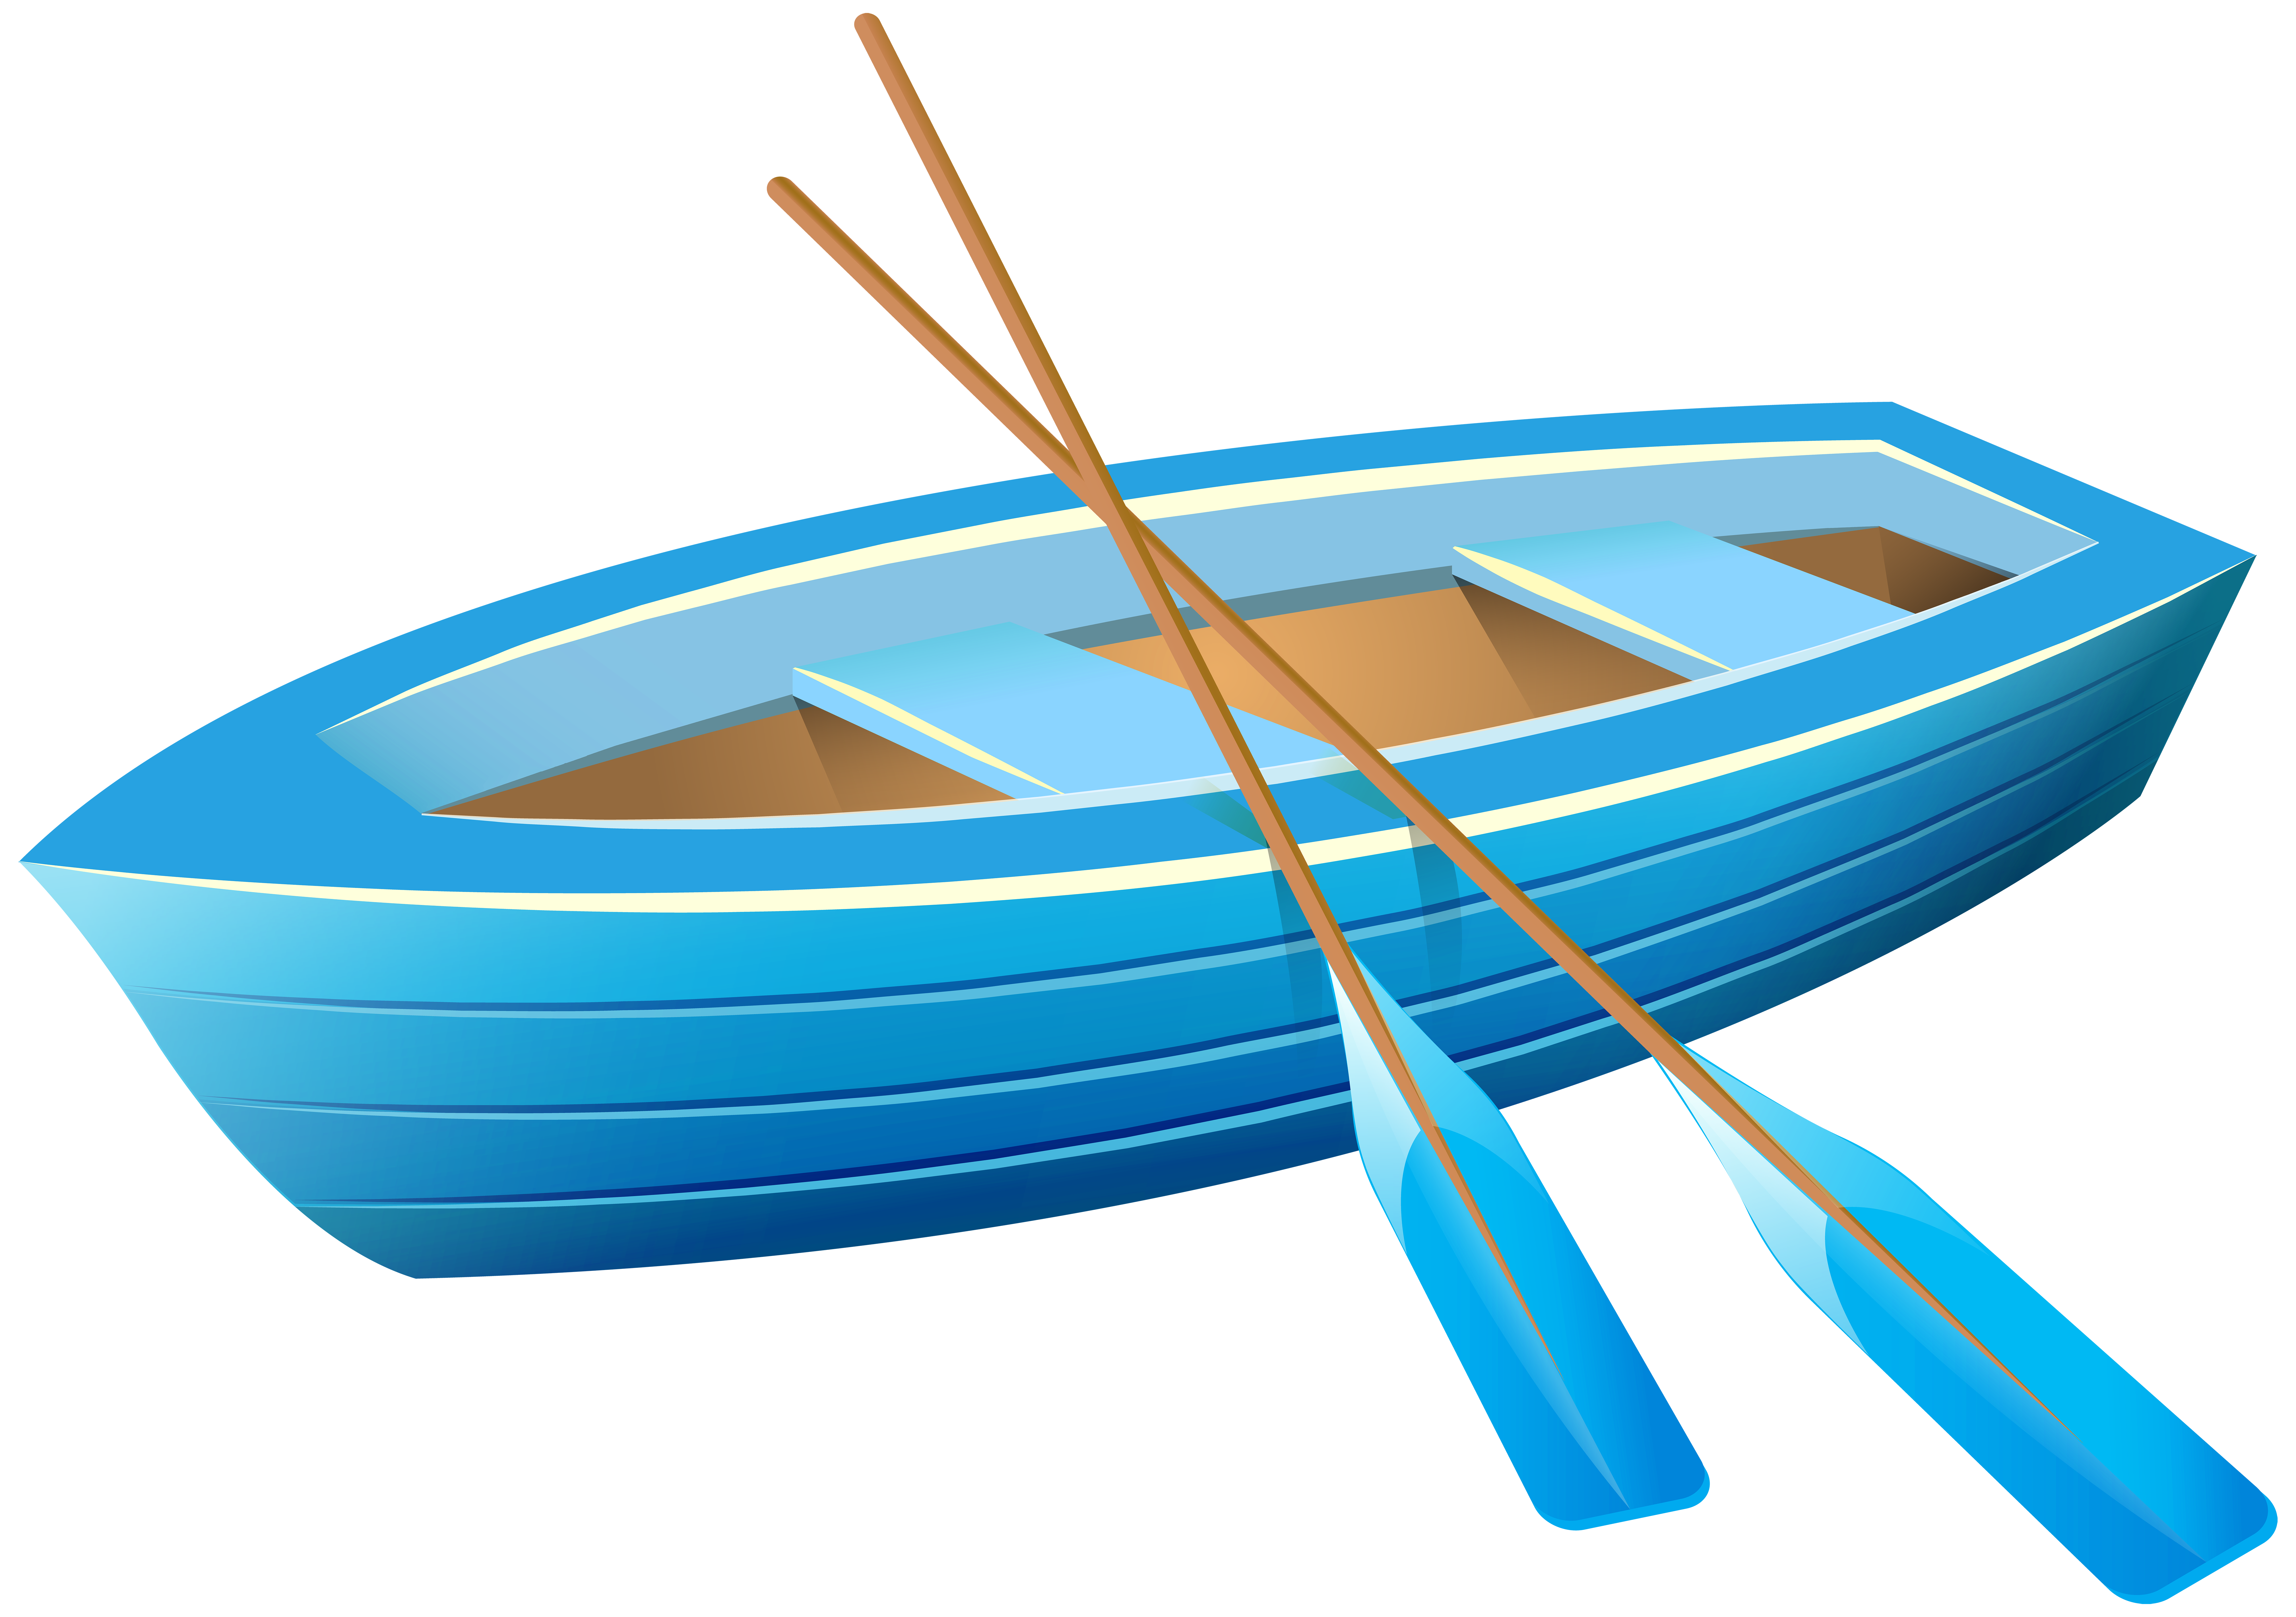 Boating clipart transparent background. Blue boat png clip